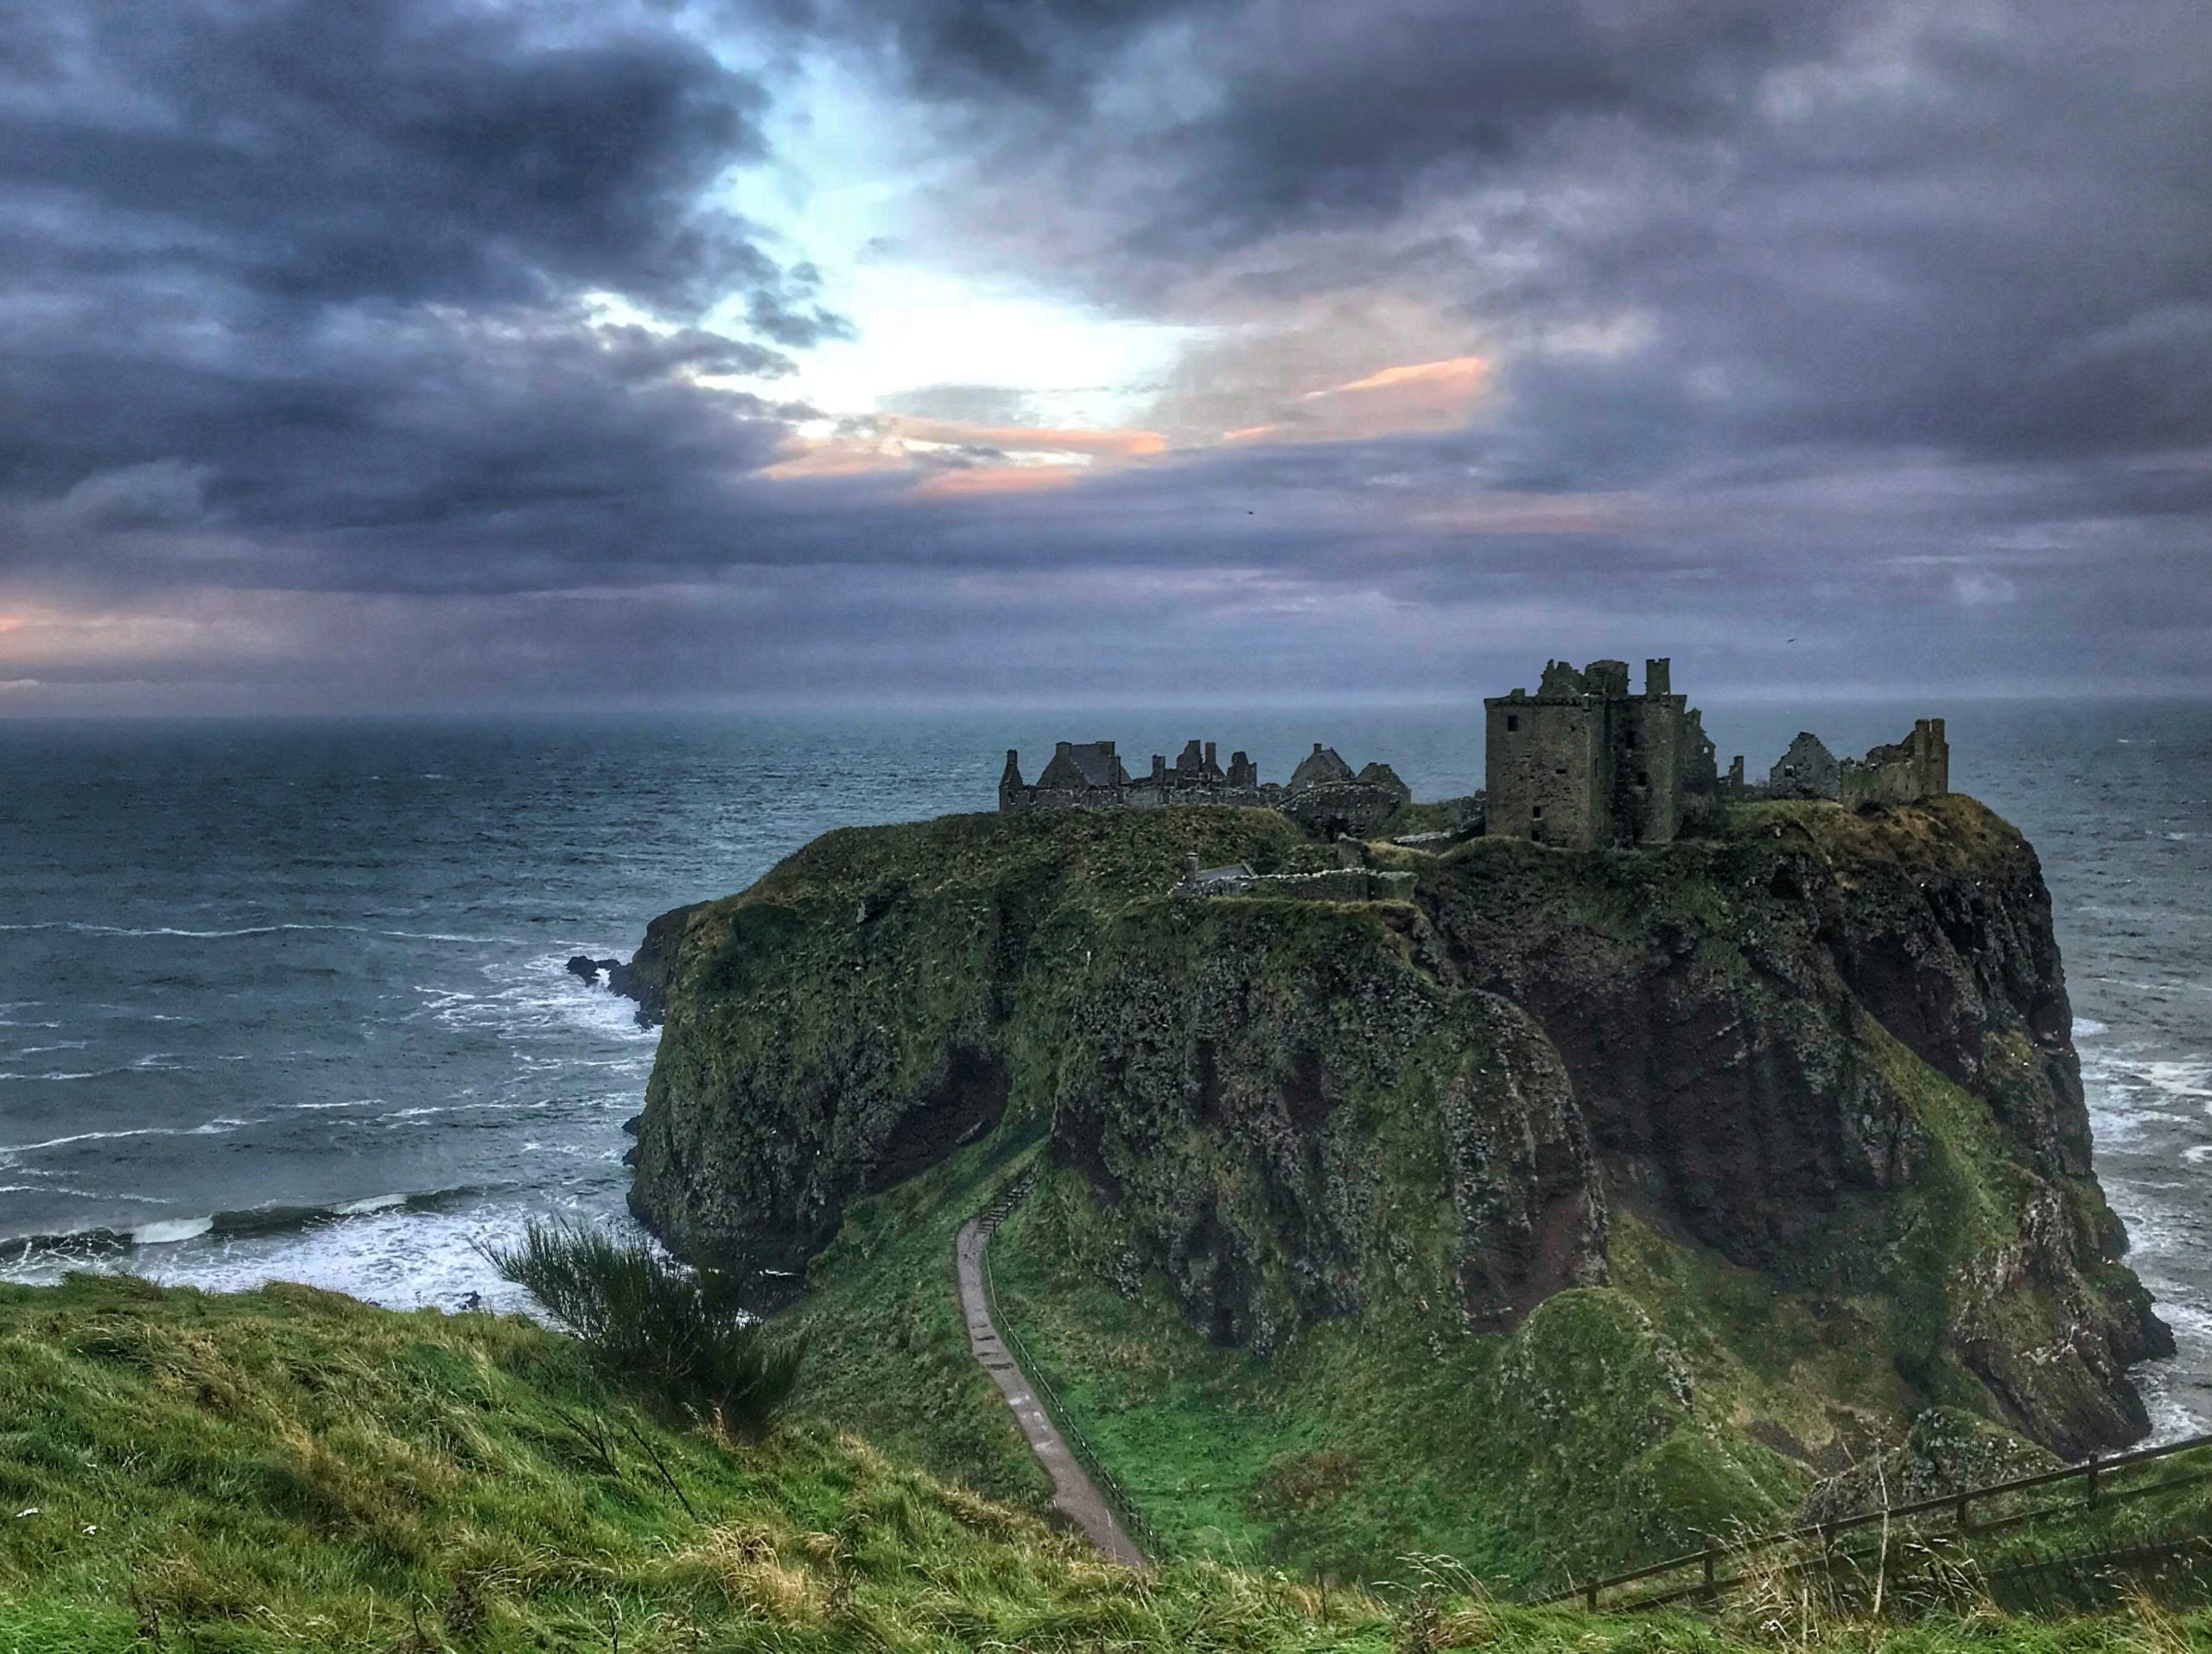 image of a ruined castle on an island with a sunset, how to use setting in your writing